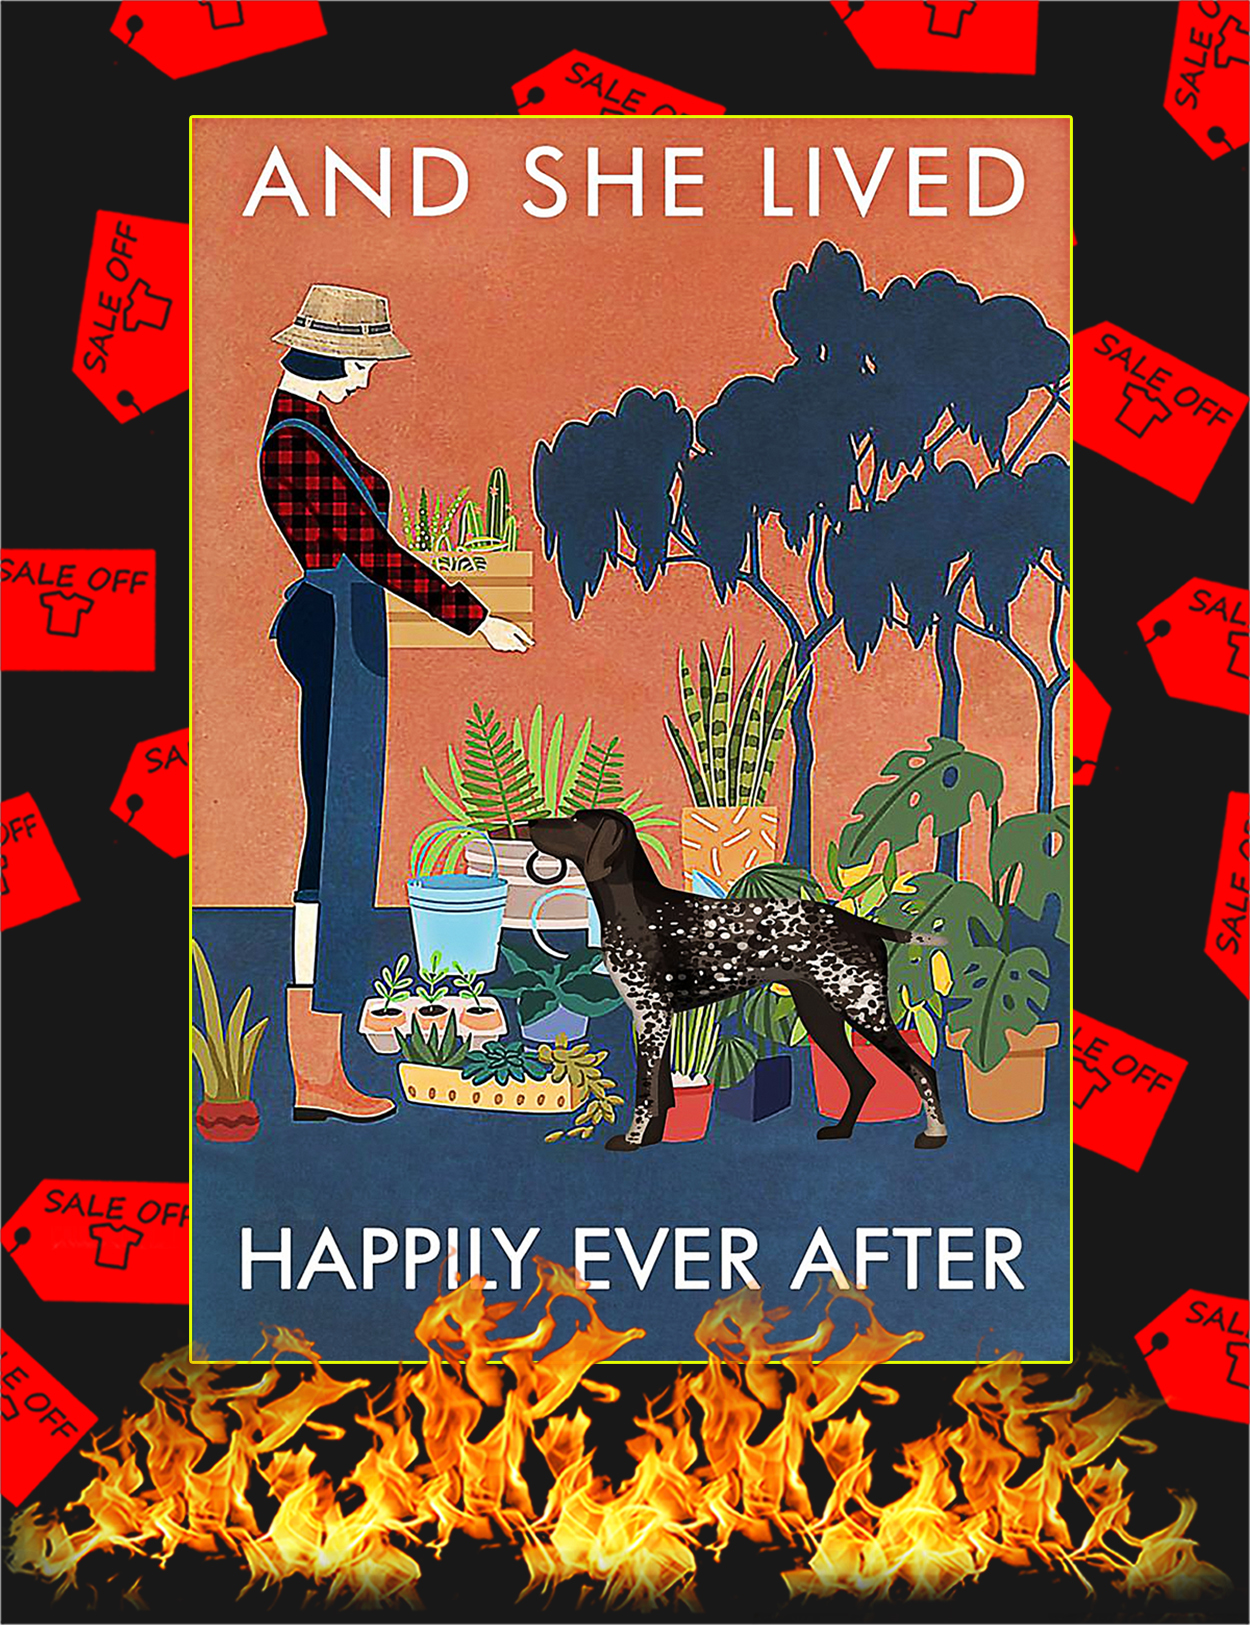 German Shorthaired Pointer And she lived happily ever after poster - A3